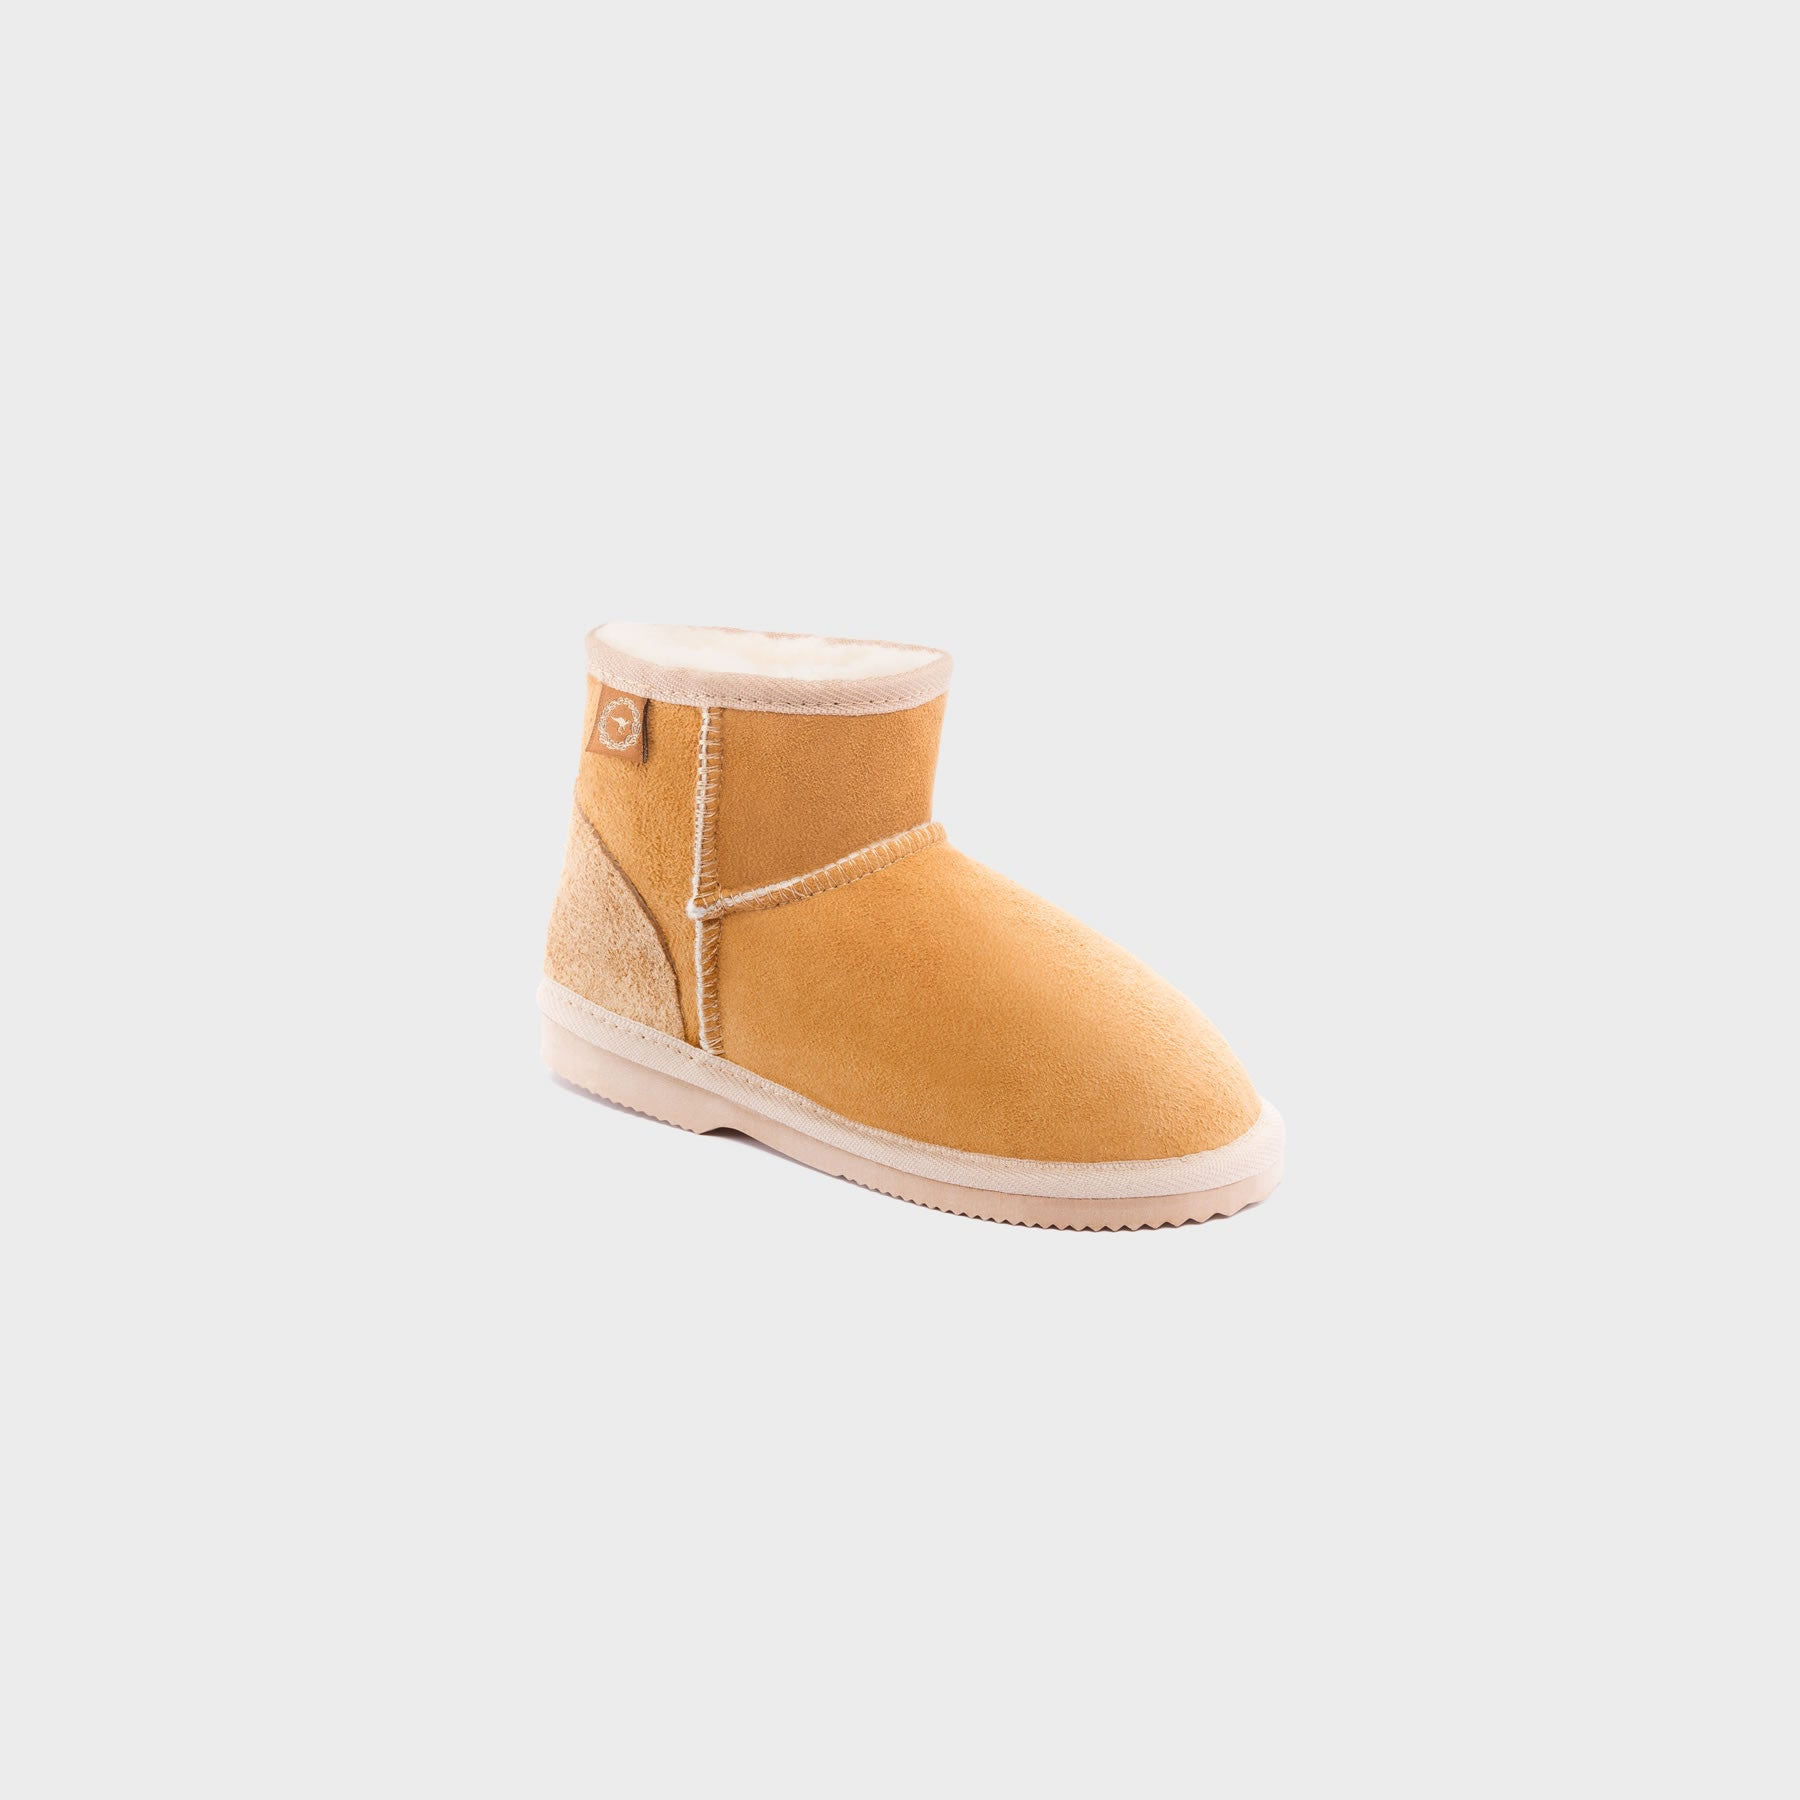 Ugg Australia Mini Ugg Boot - Chestnut